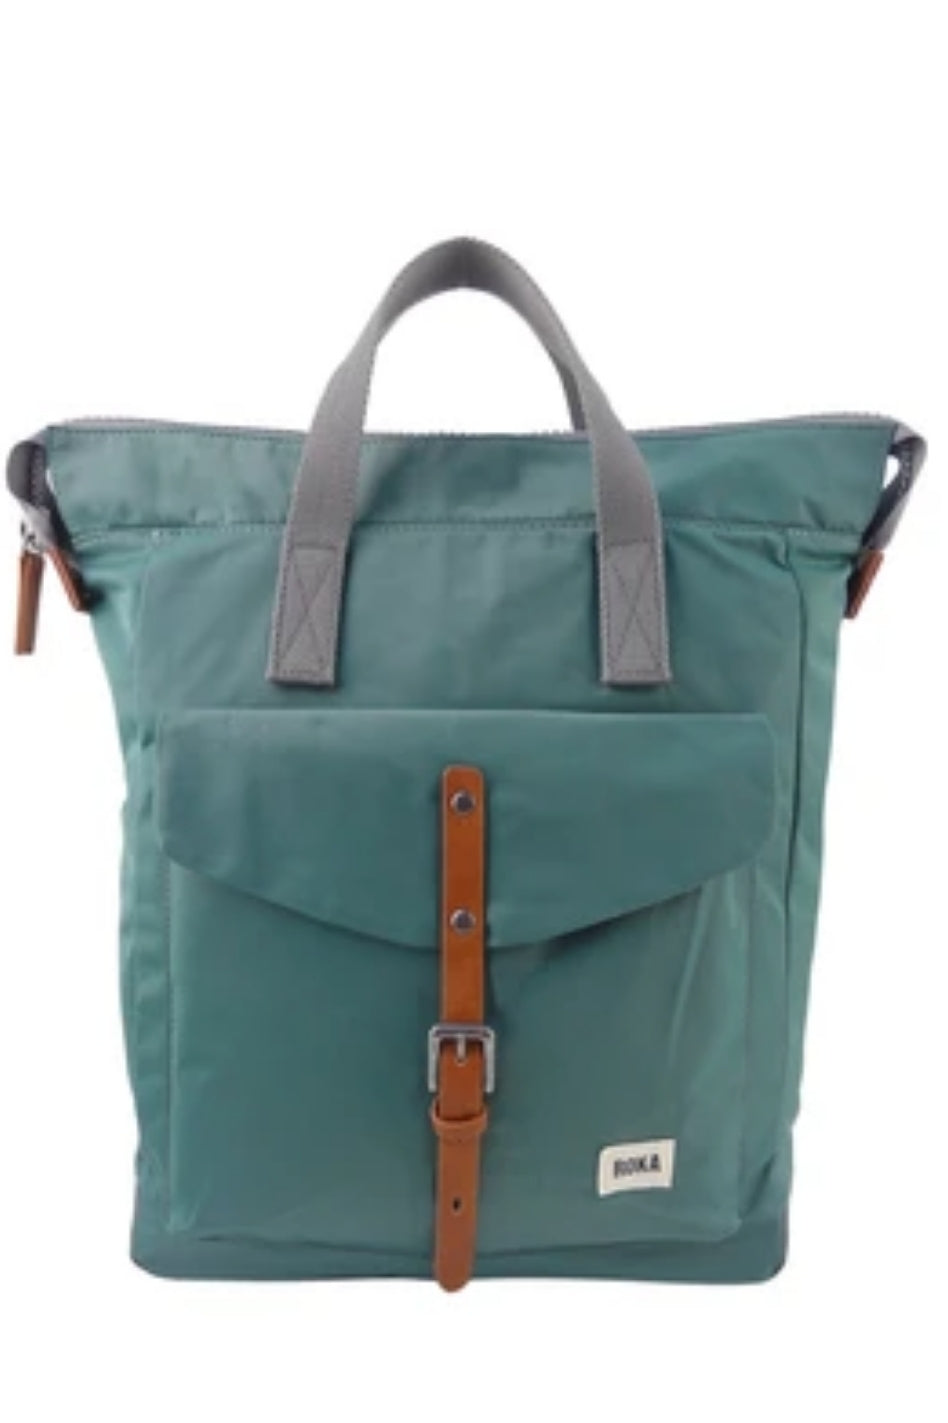 ROKA -  Bantry C Medium Sustainable Bag